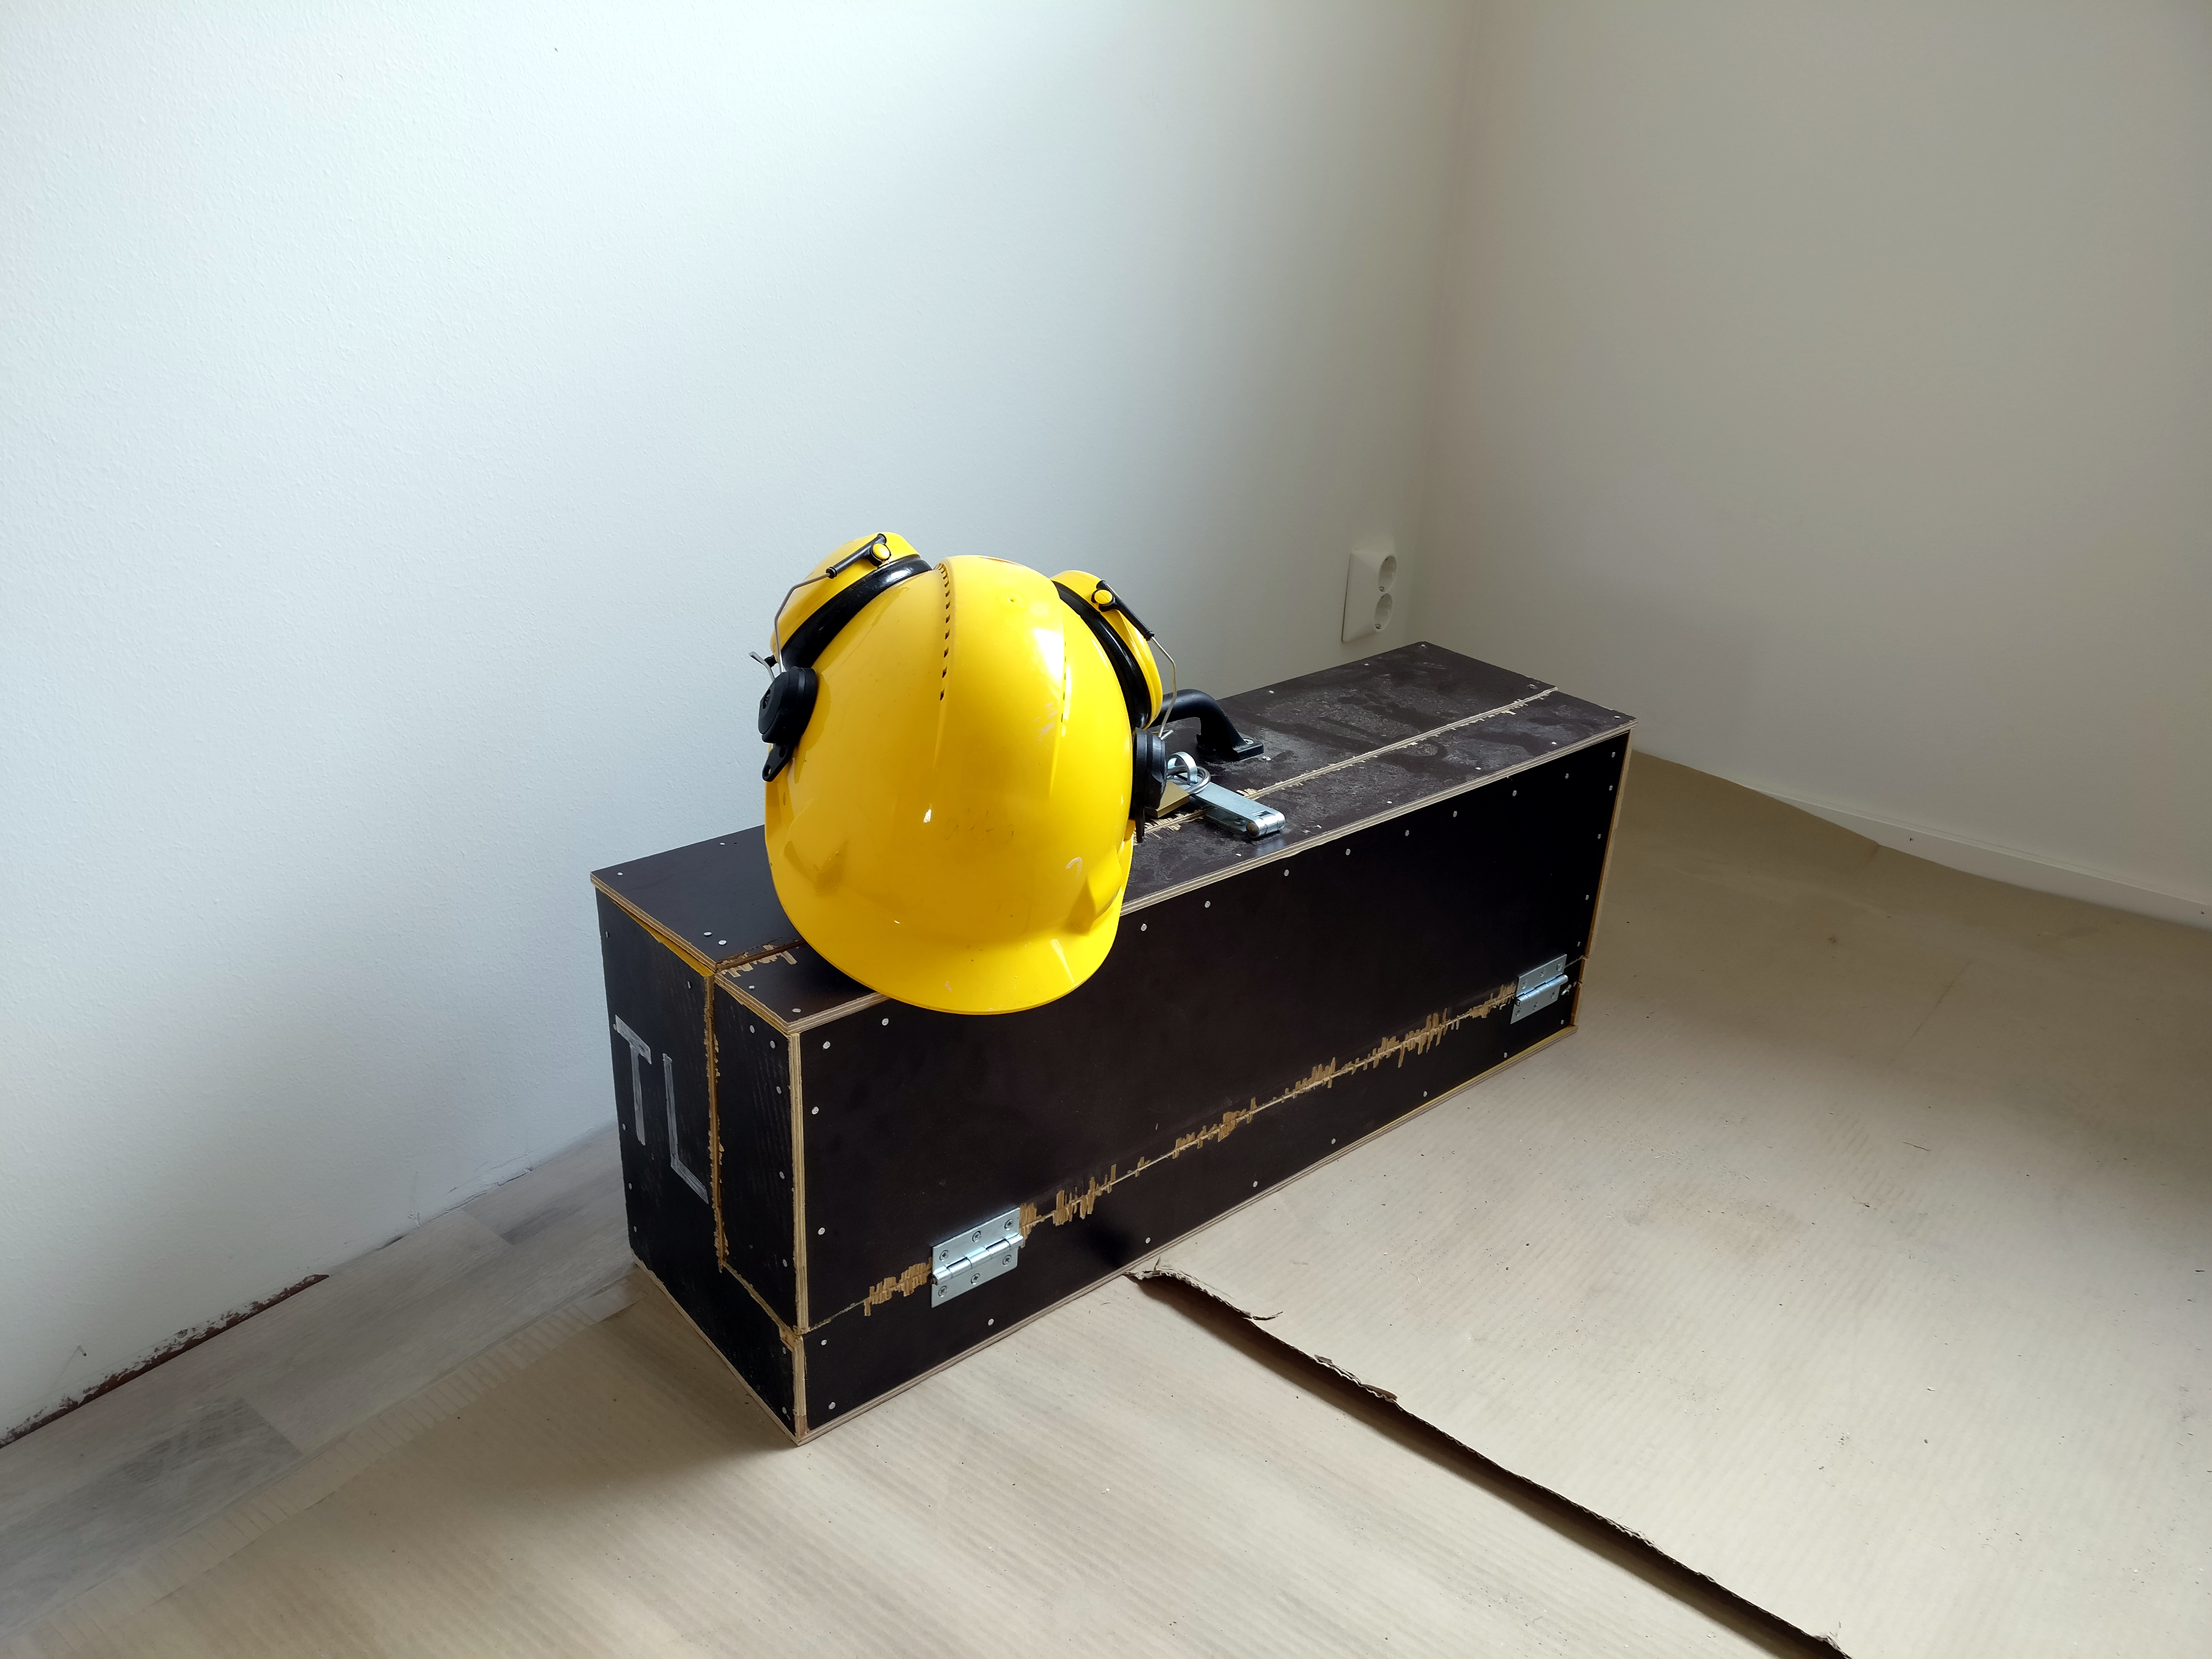 File:Builders Toolbox And Hard Hat